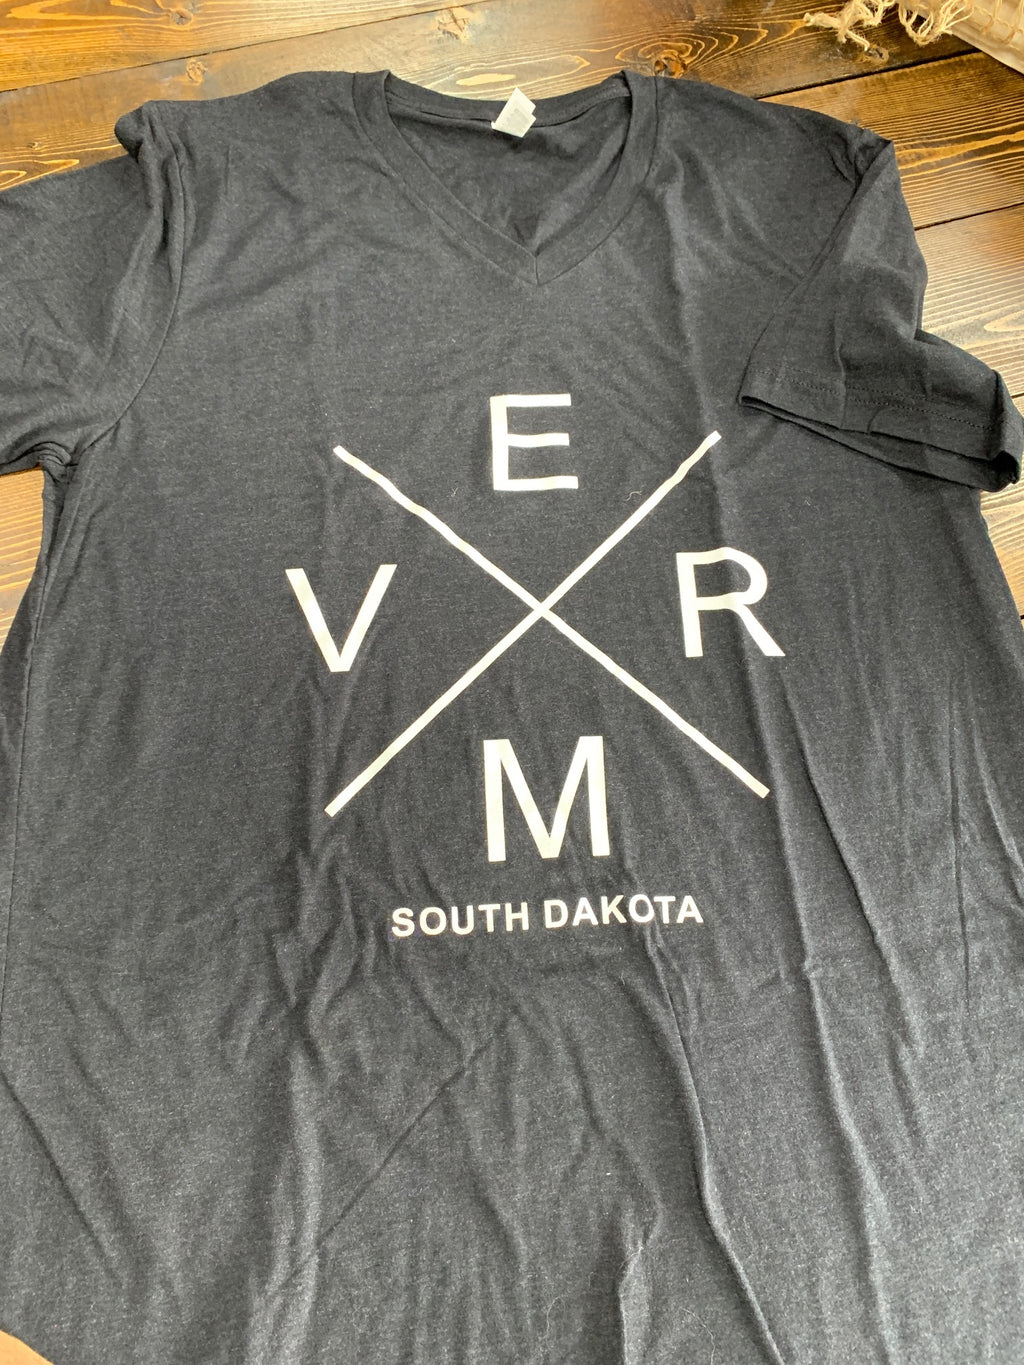 Short sleeved V.E.R.M Bella gray v-neck T with white  - L